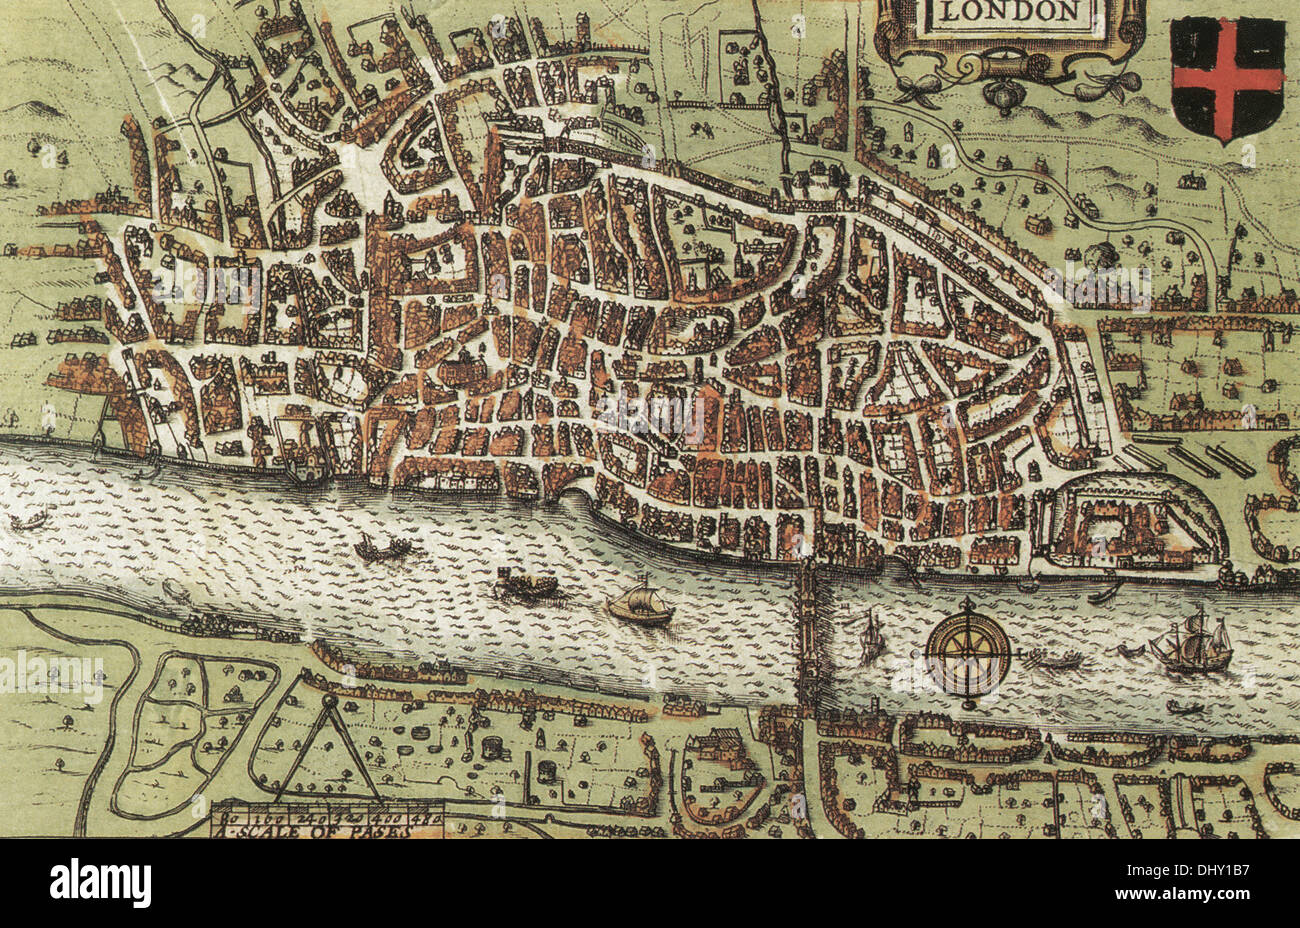 Old map of London, England, by John Speed, 1611